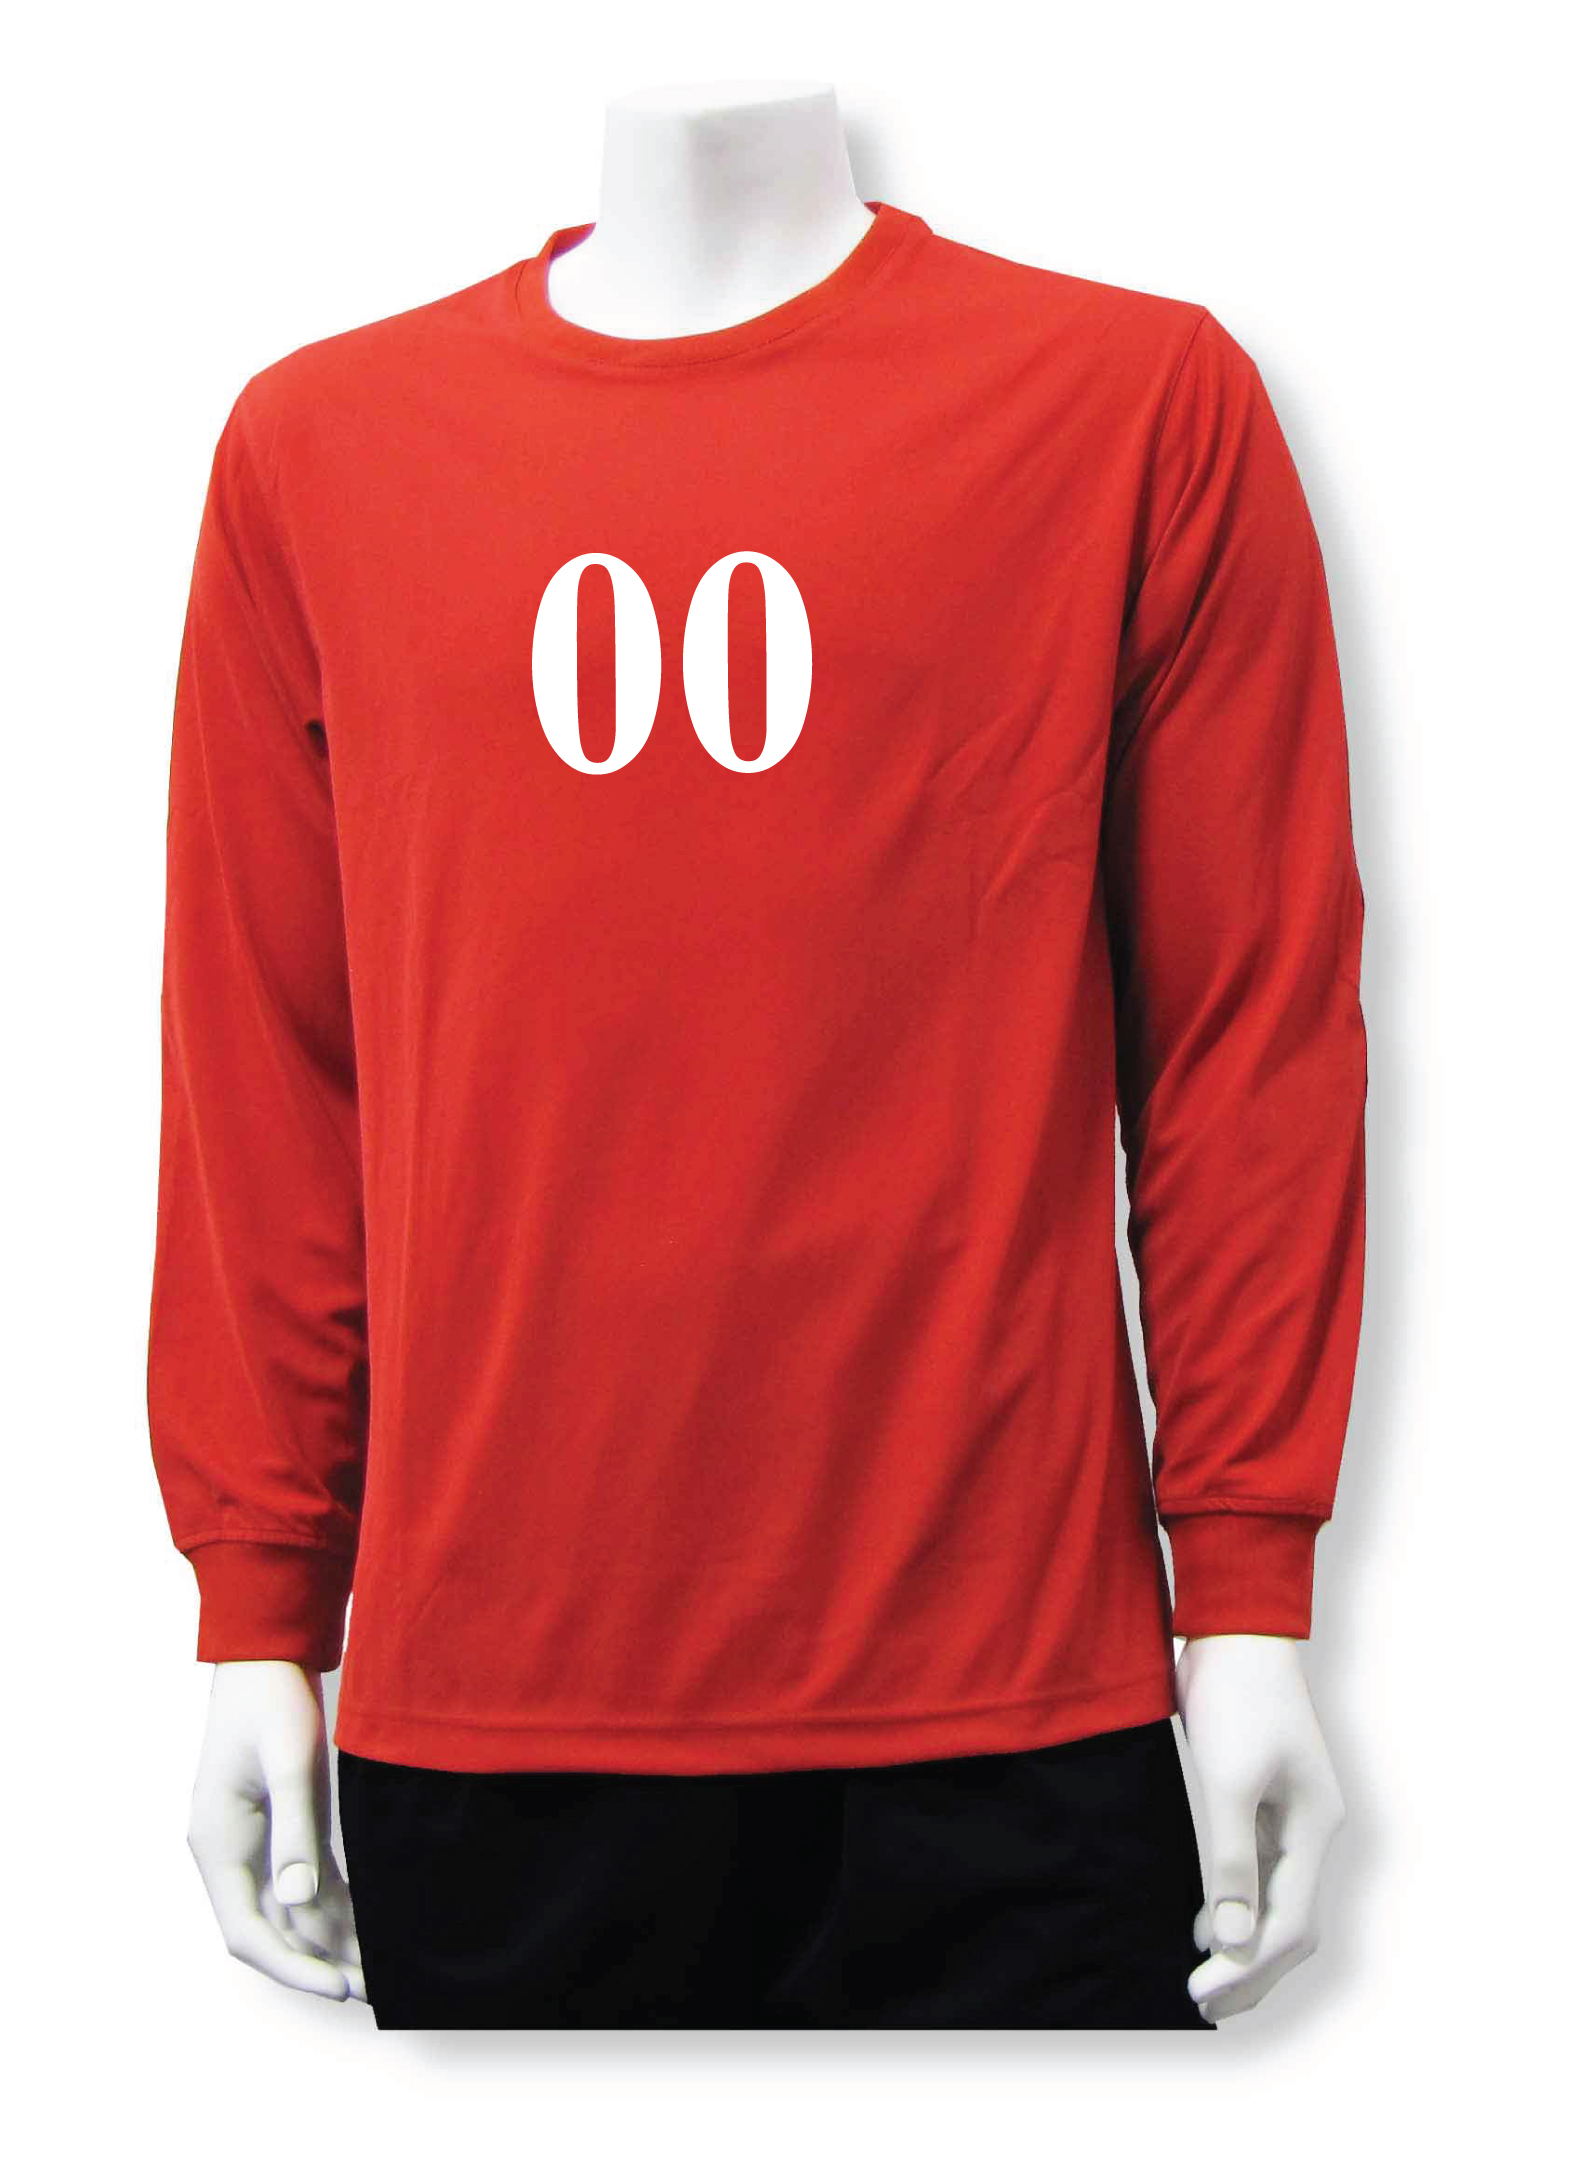 Long sleeve soccer goalie jersey with numbe, in red, by Code Four Athletics